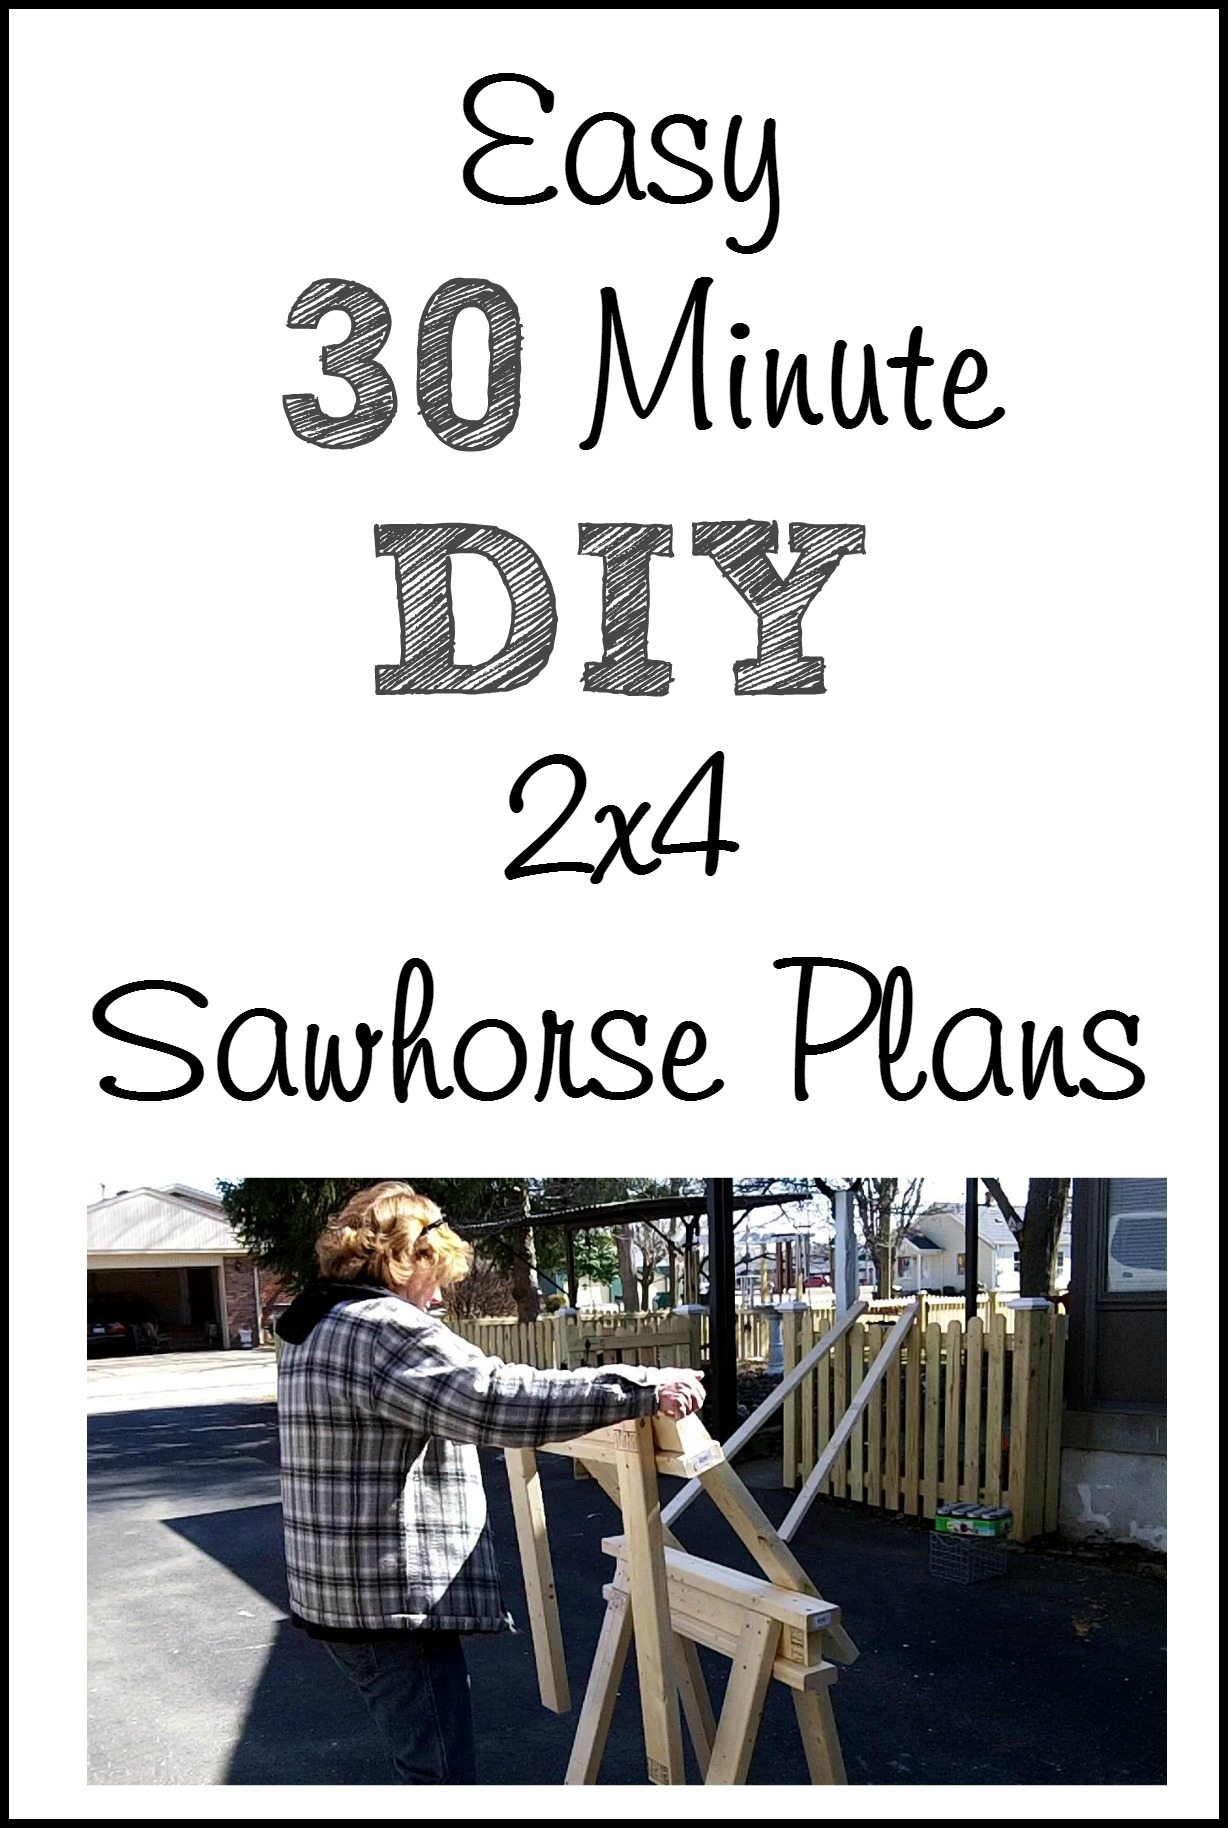 Easy 2x4 Sawhorse Plans - My Repurposed Life™